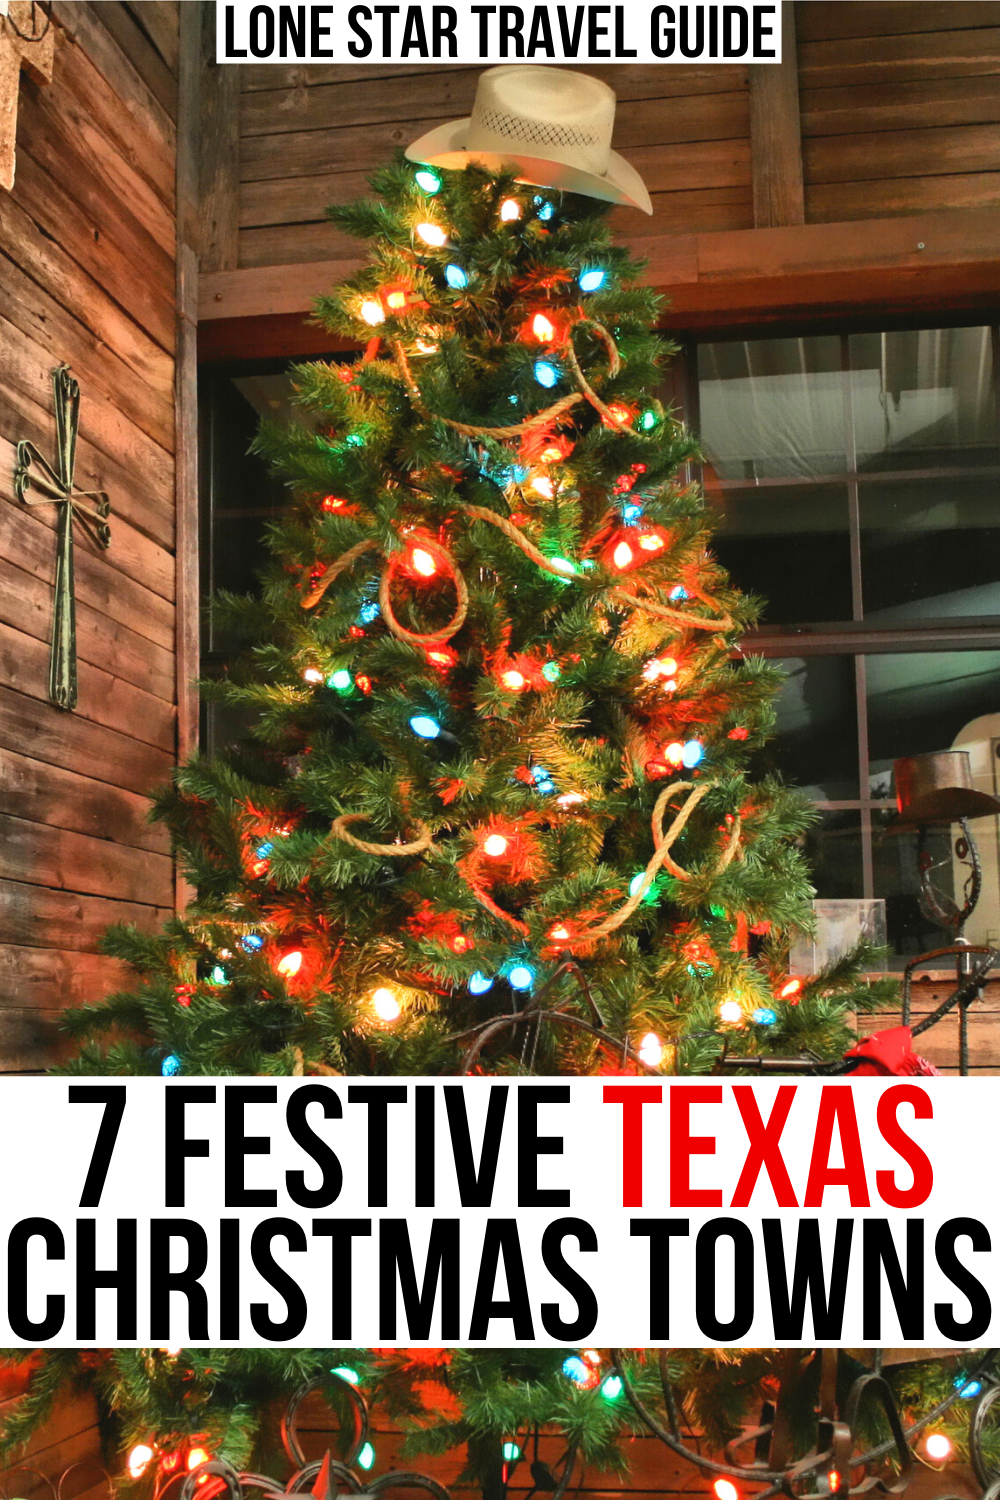 Cowboy Christmas 2020 Vacation 7 Adorable Christmas Towns in Texas (+ What to Do There!) in 2020